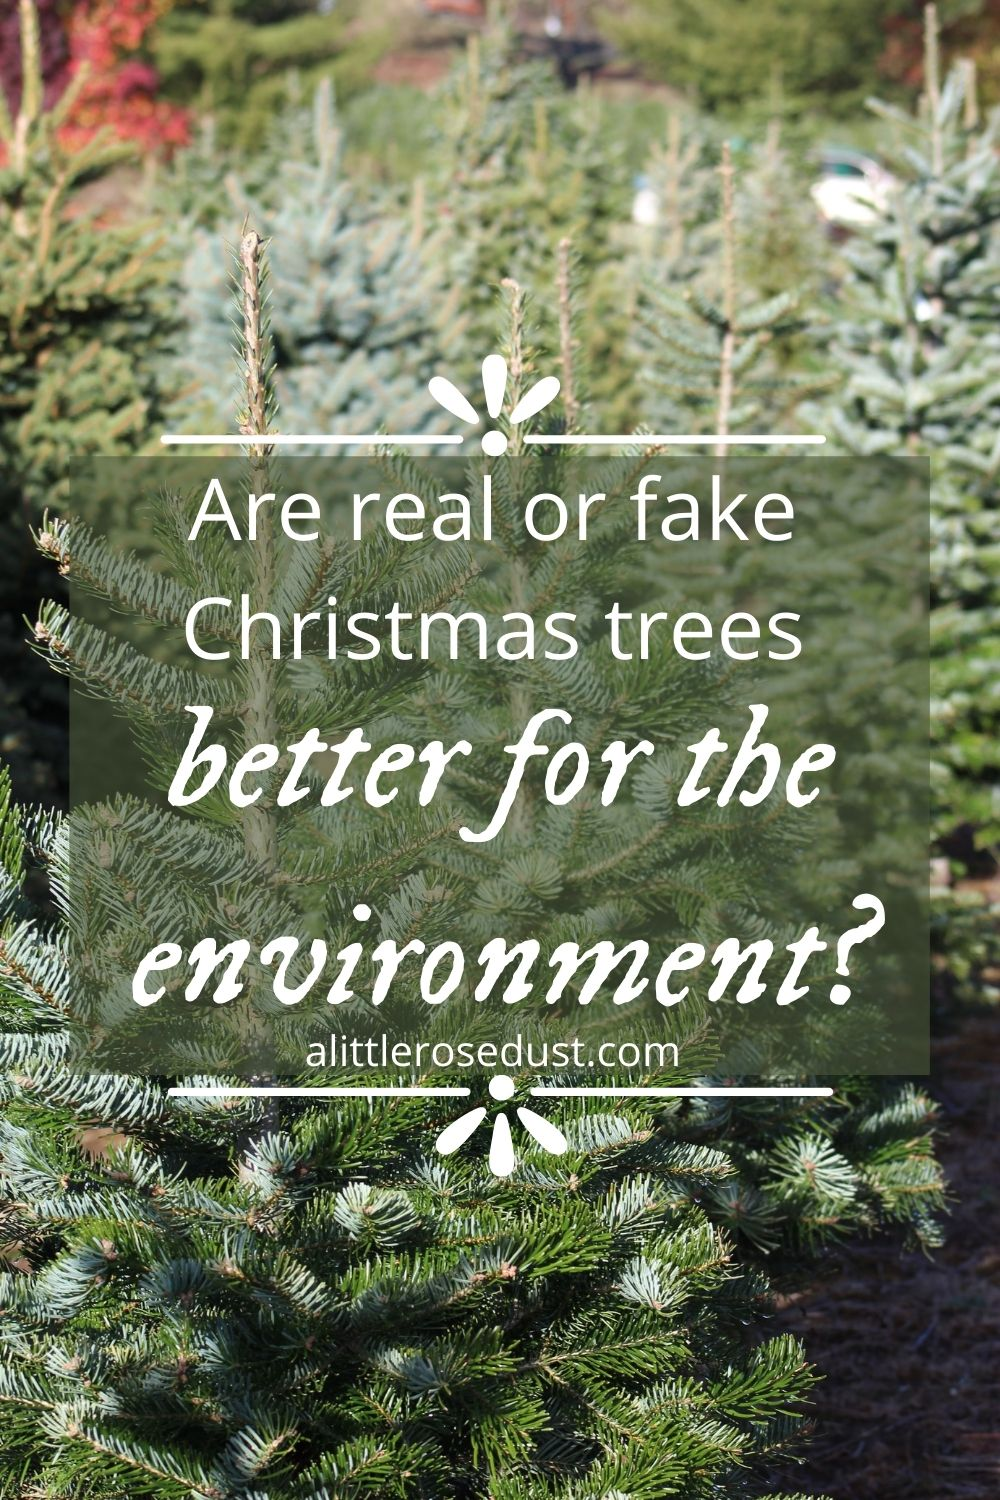 are real or fake Christmas trees better fot he environment